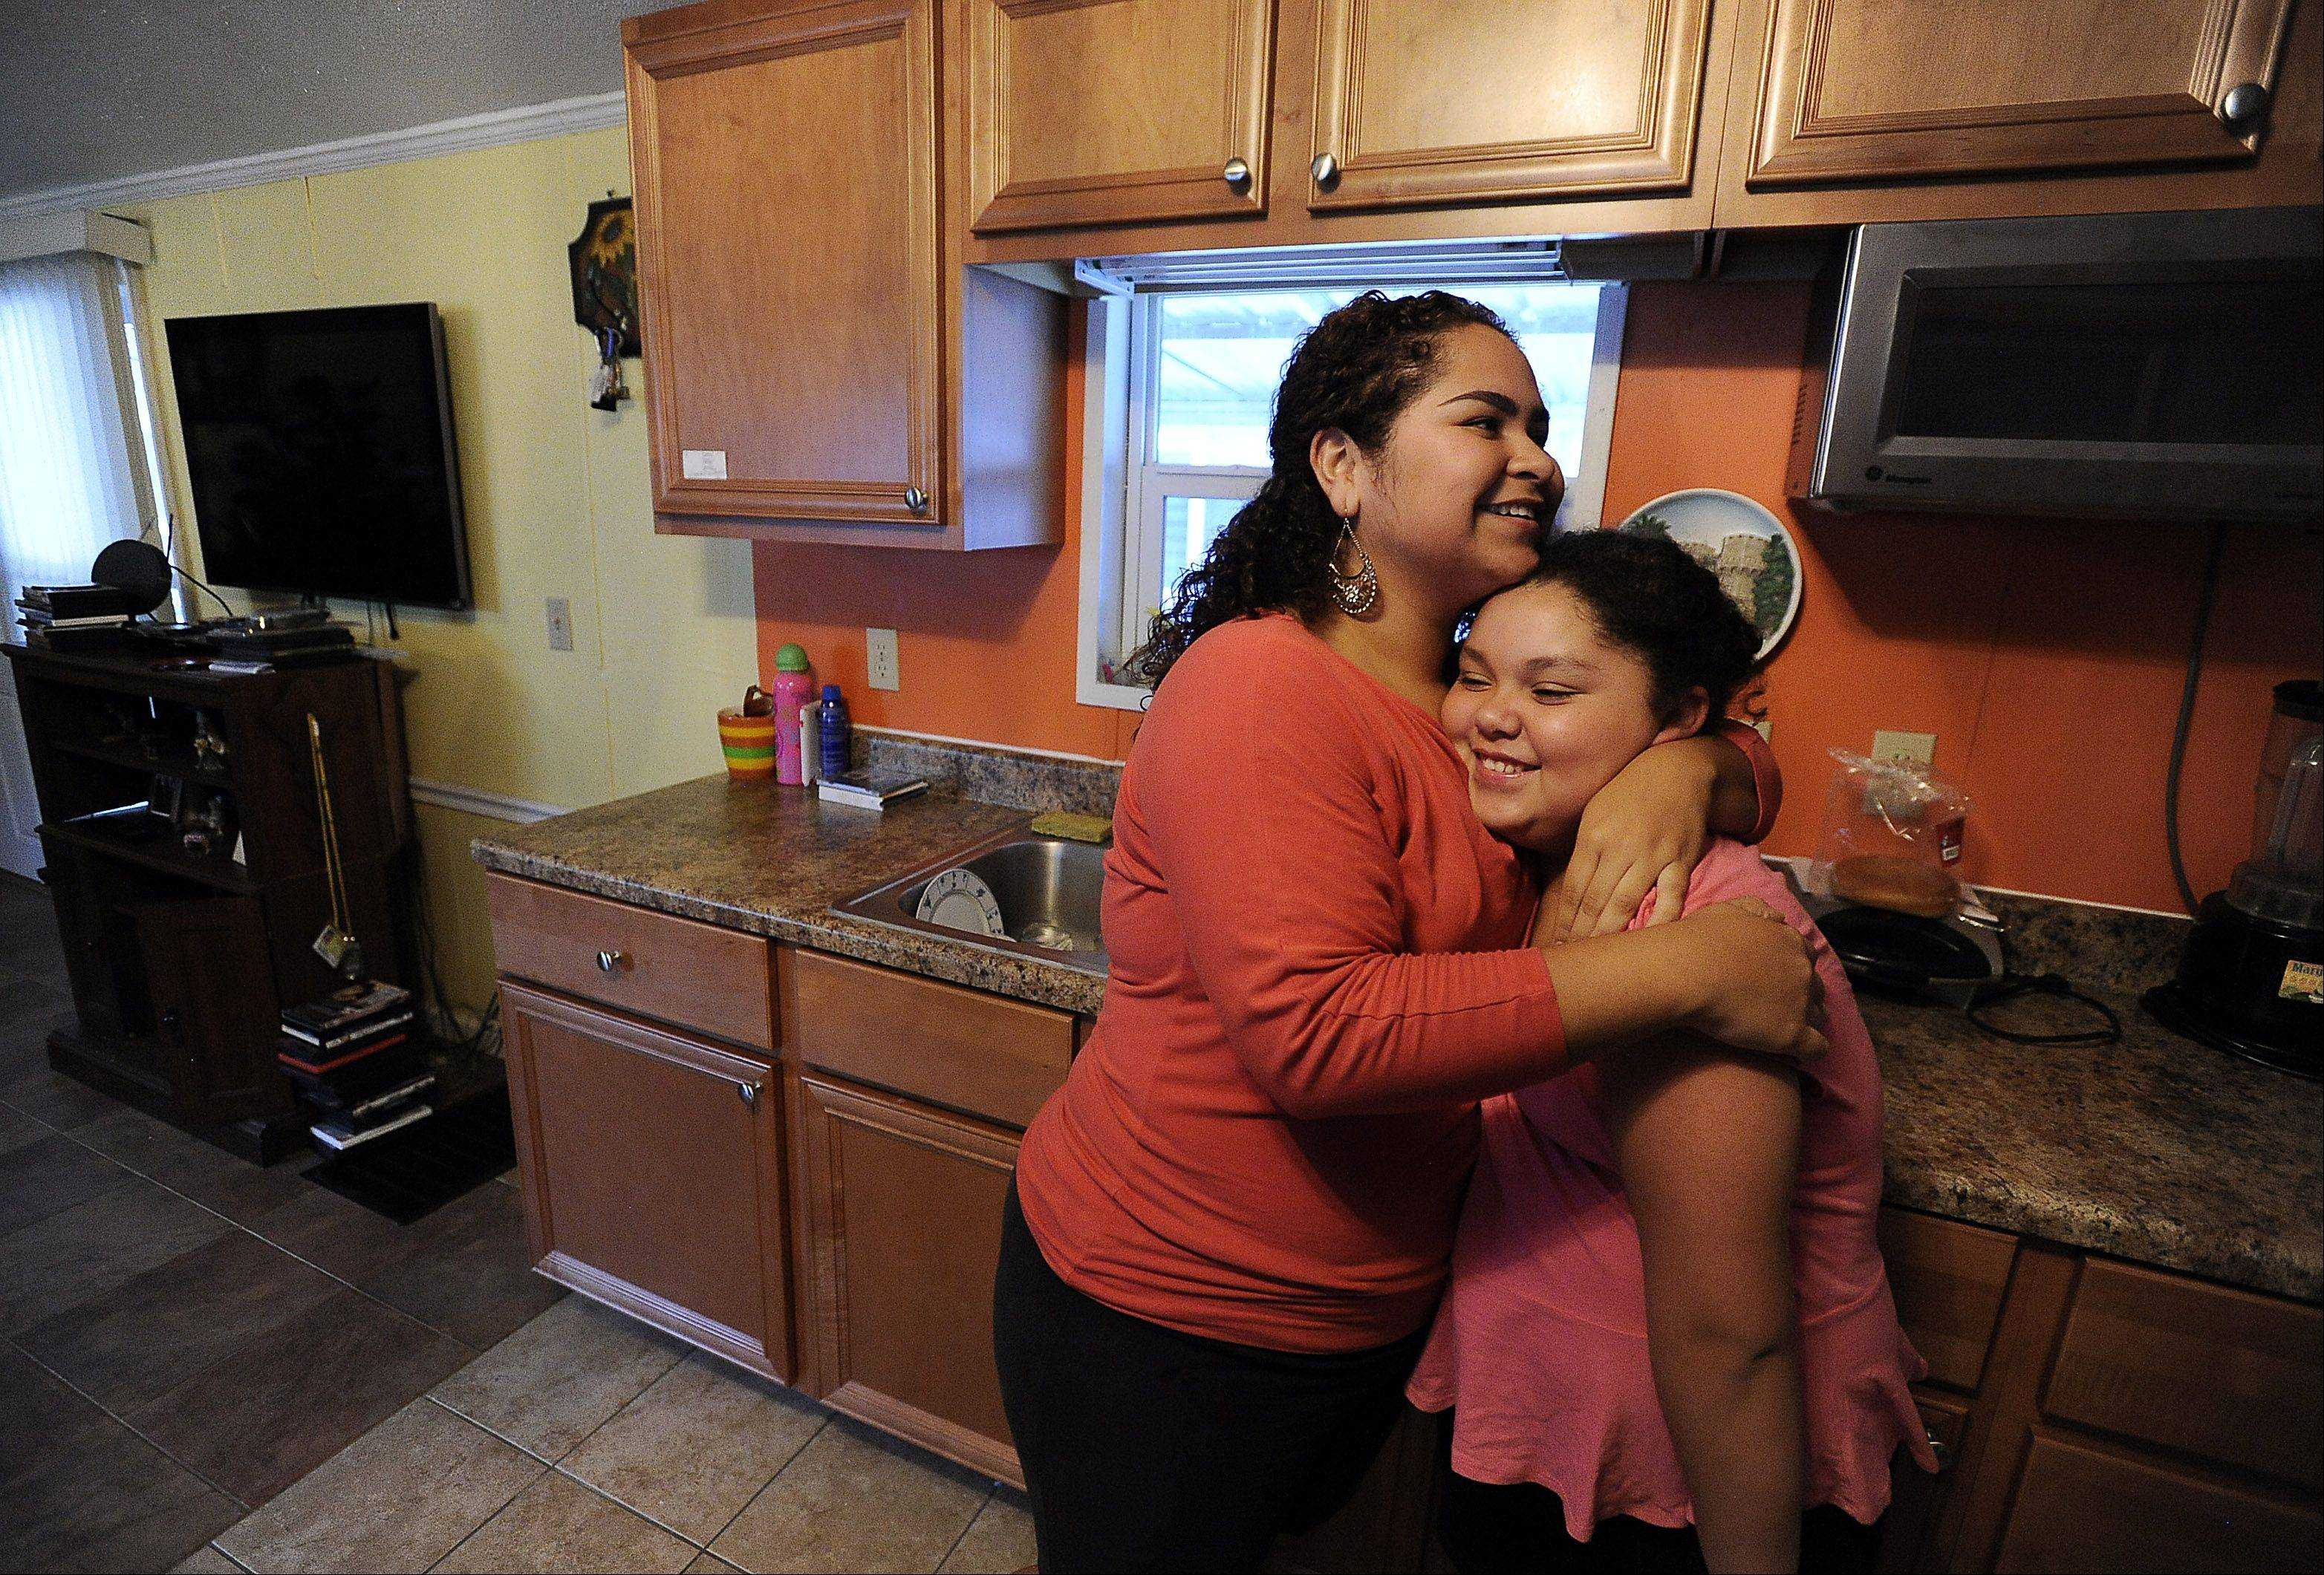 Family tragedy leaves young sisters on their own in Des Plaines area home